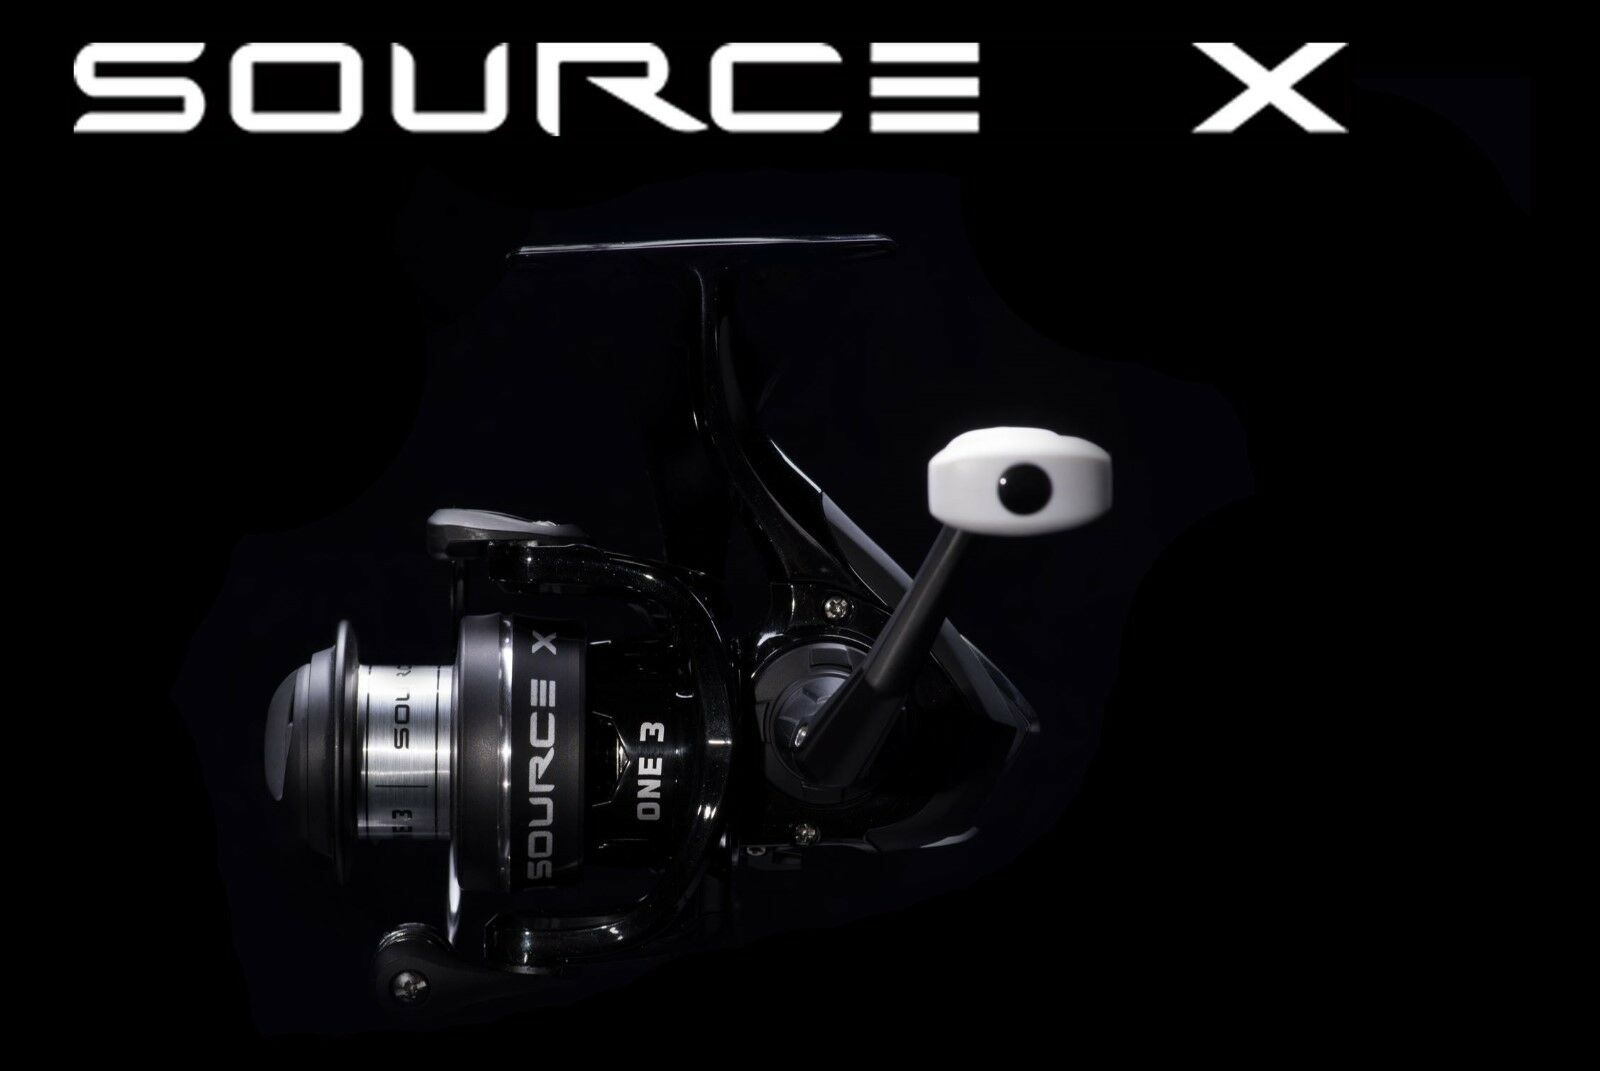 ONE3 13  Fishing Source X 1000 Gear Ratio 5.2 1 Spinning Fishing Reel SORX1000  hot